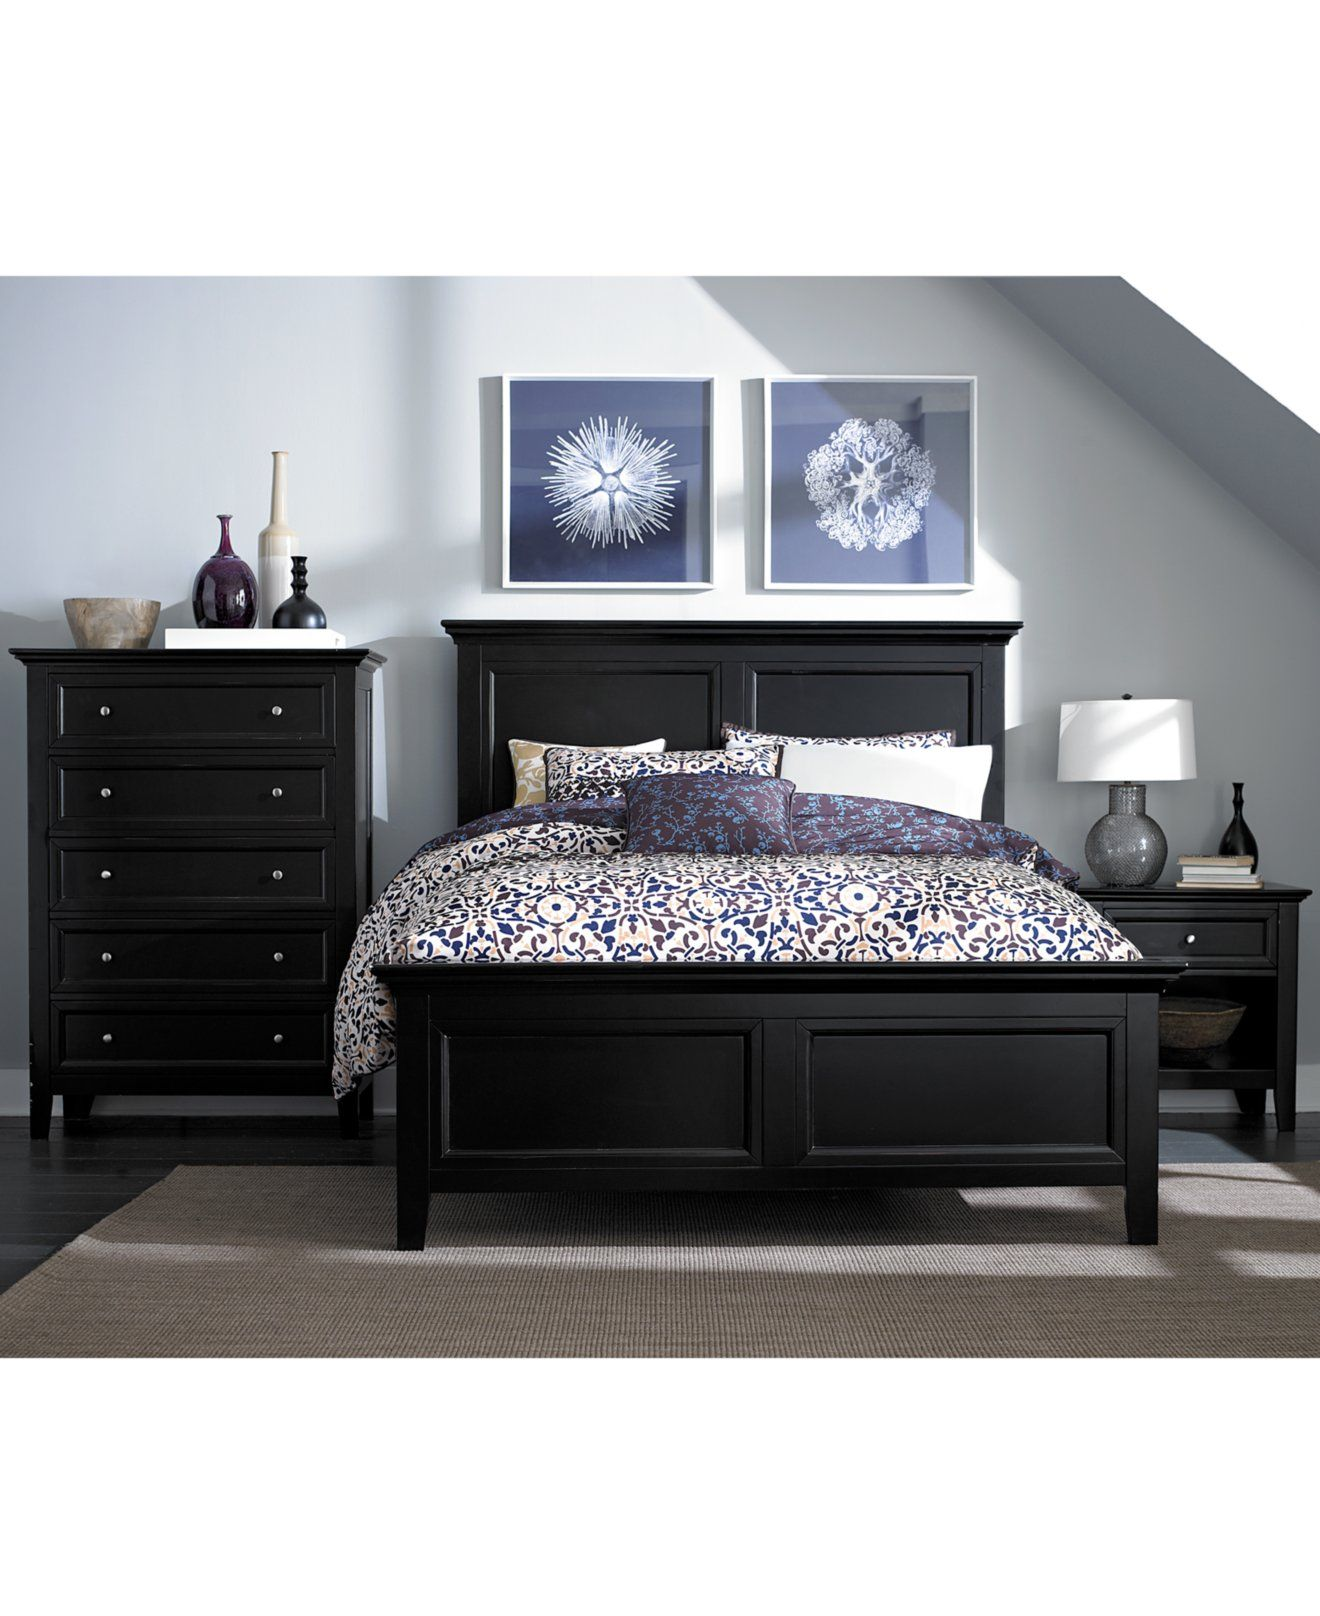 Captiva 3 Piece Queen Bedroom Set With Dresser Bedroom Furniture